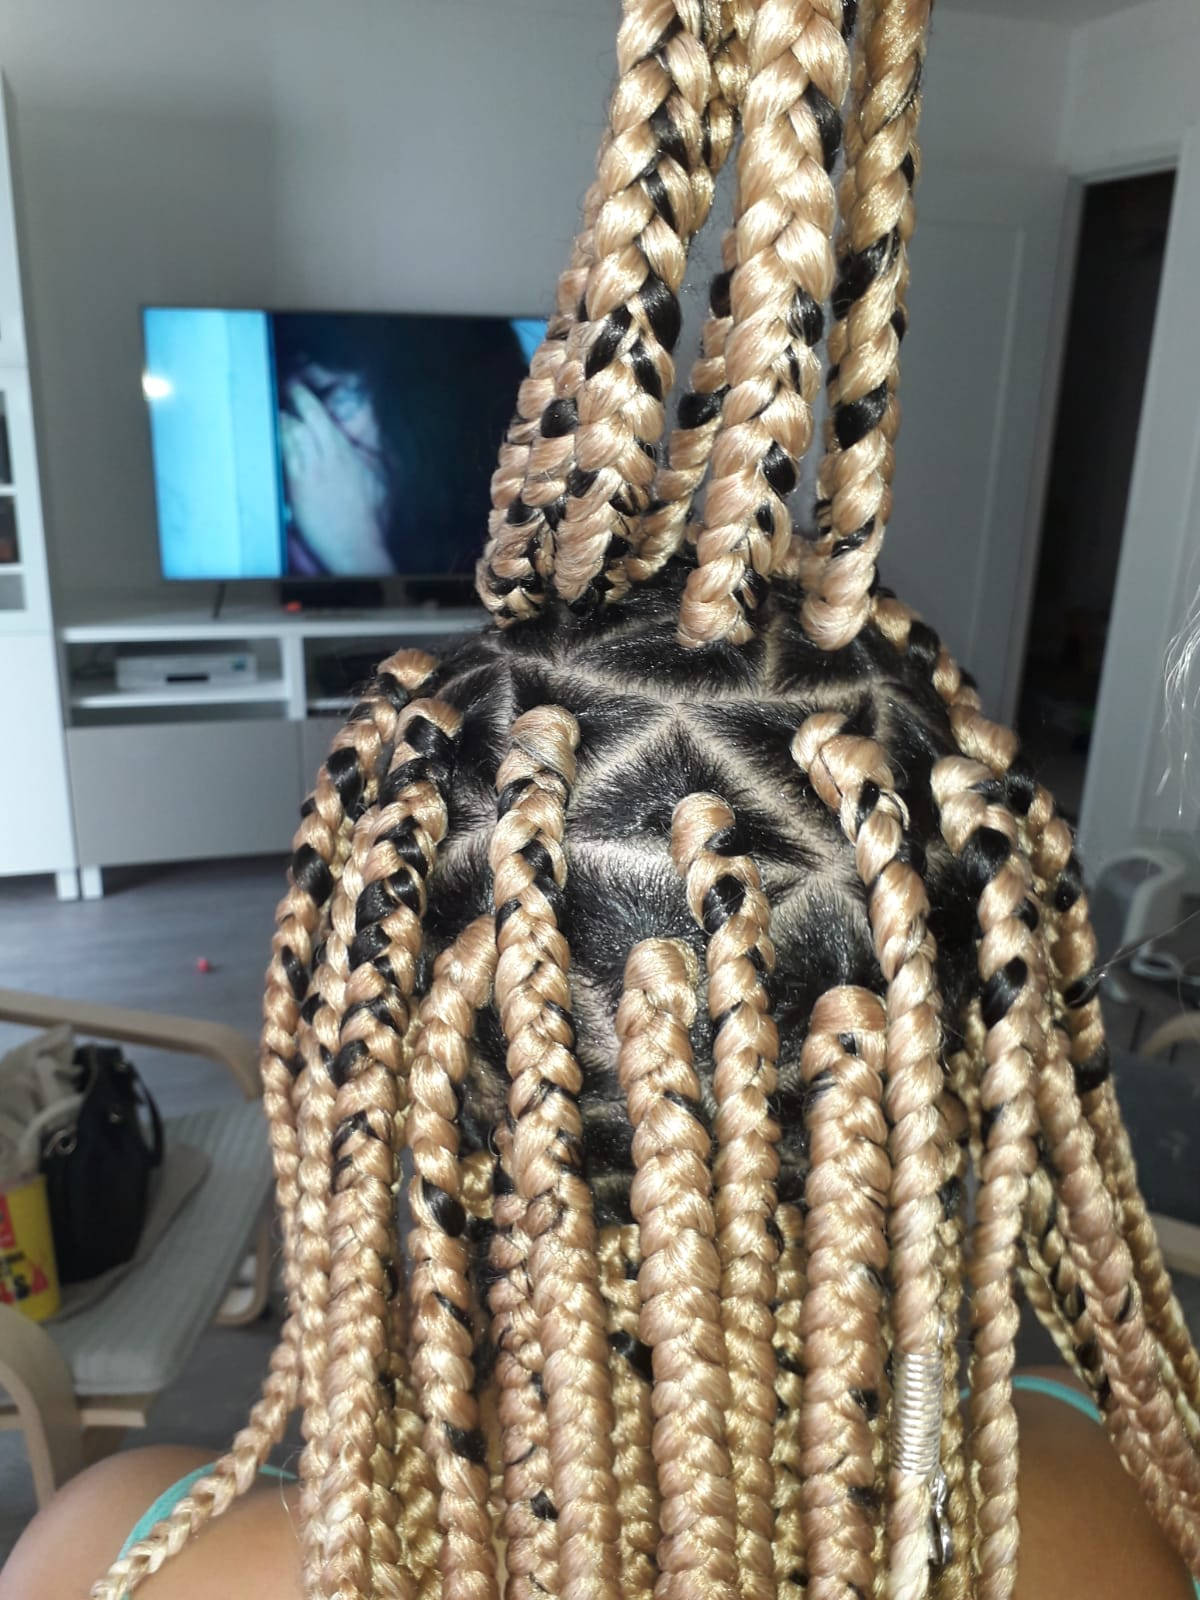 salon de coiffure afro tresse tresses box braids crochet braids vanilles tissages paris 75 77 78 91 92 93 94 95 CUYZRPFR